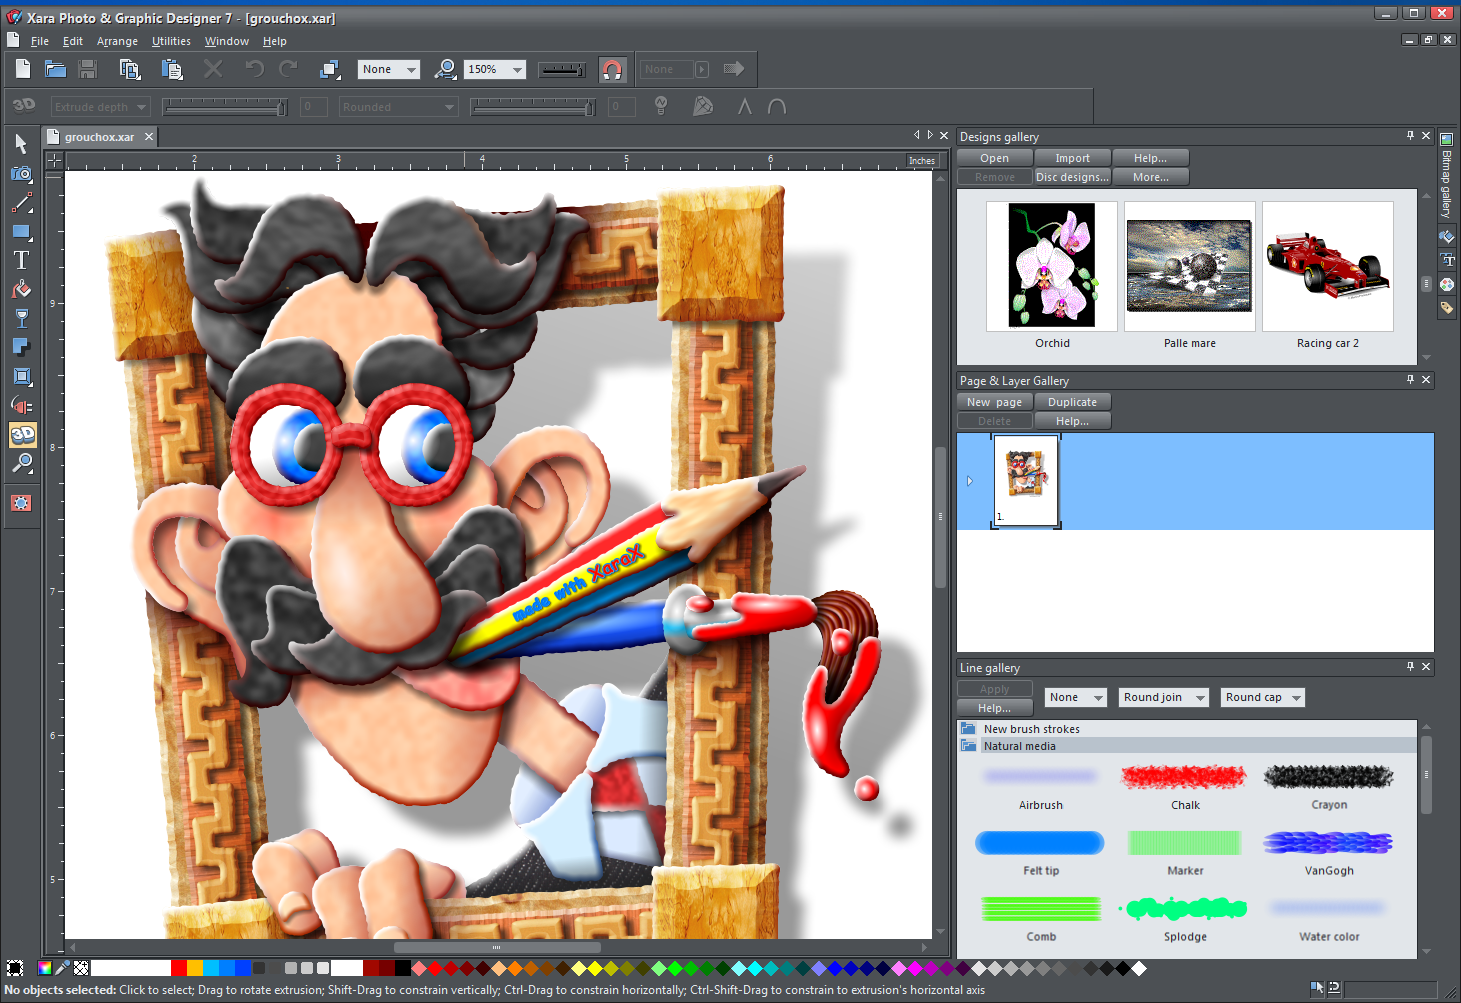 Graphic Design Software For Mac Graphic Design Software On Mac Os X Like Corel Painter Illustrator Cs6 My Graphic Design Software Graphic Design Graphic